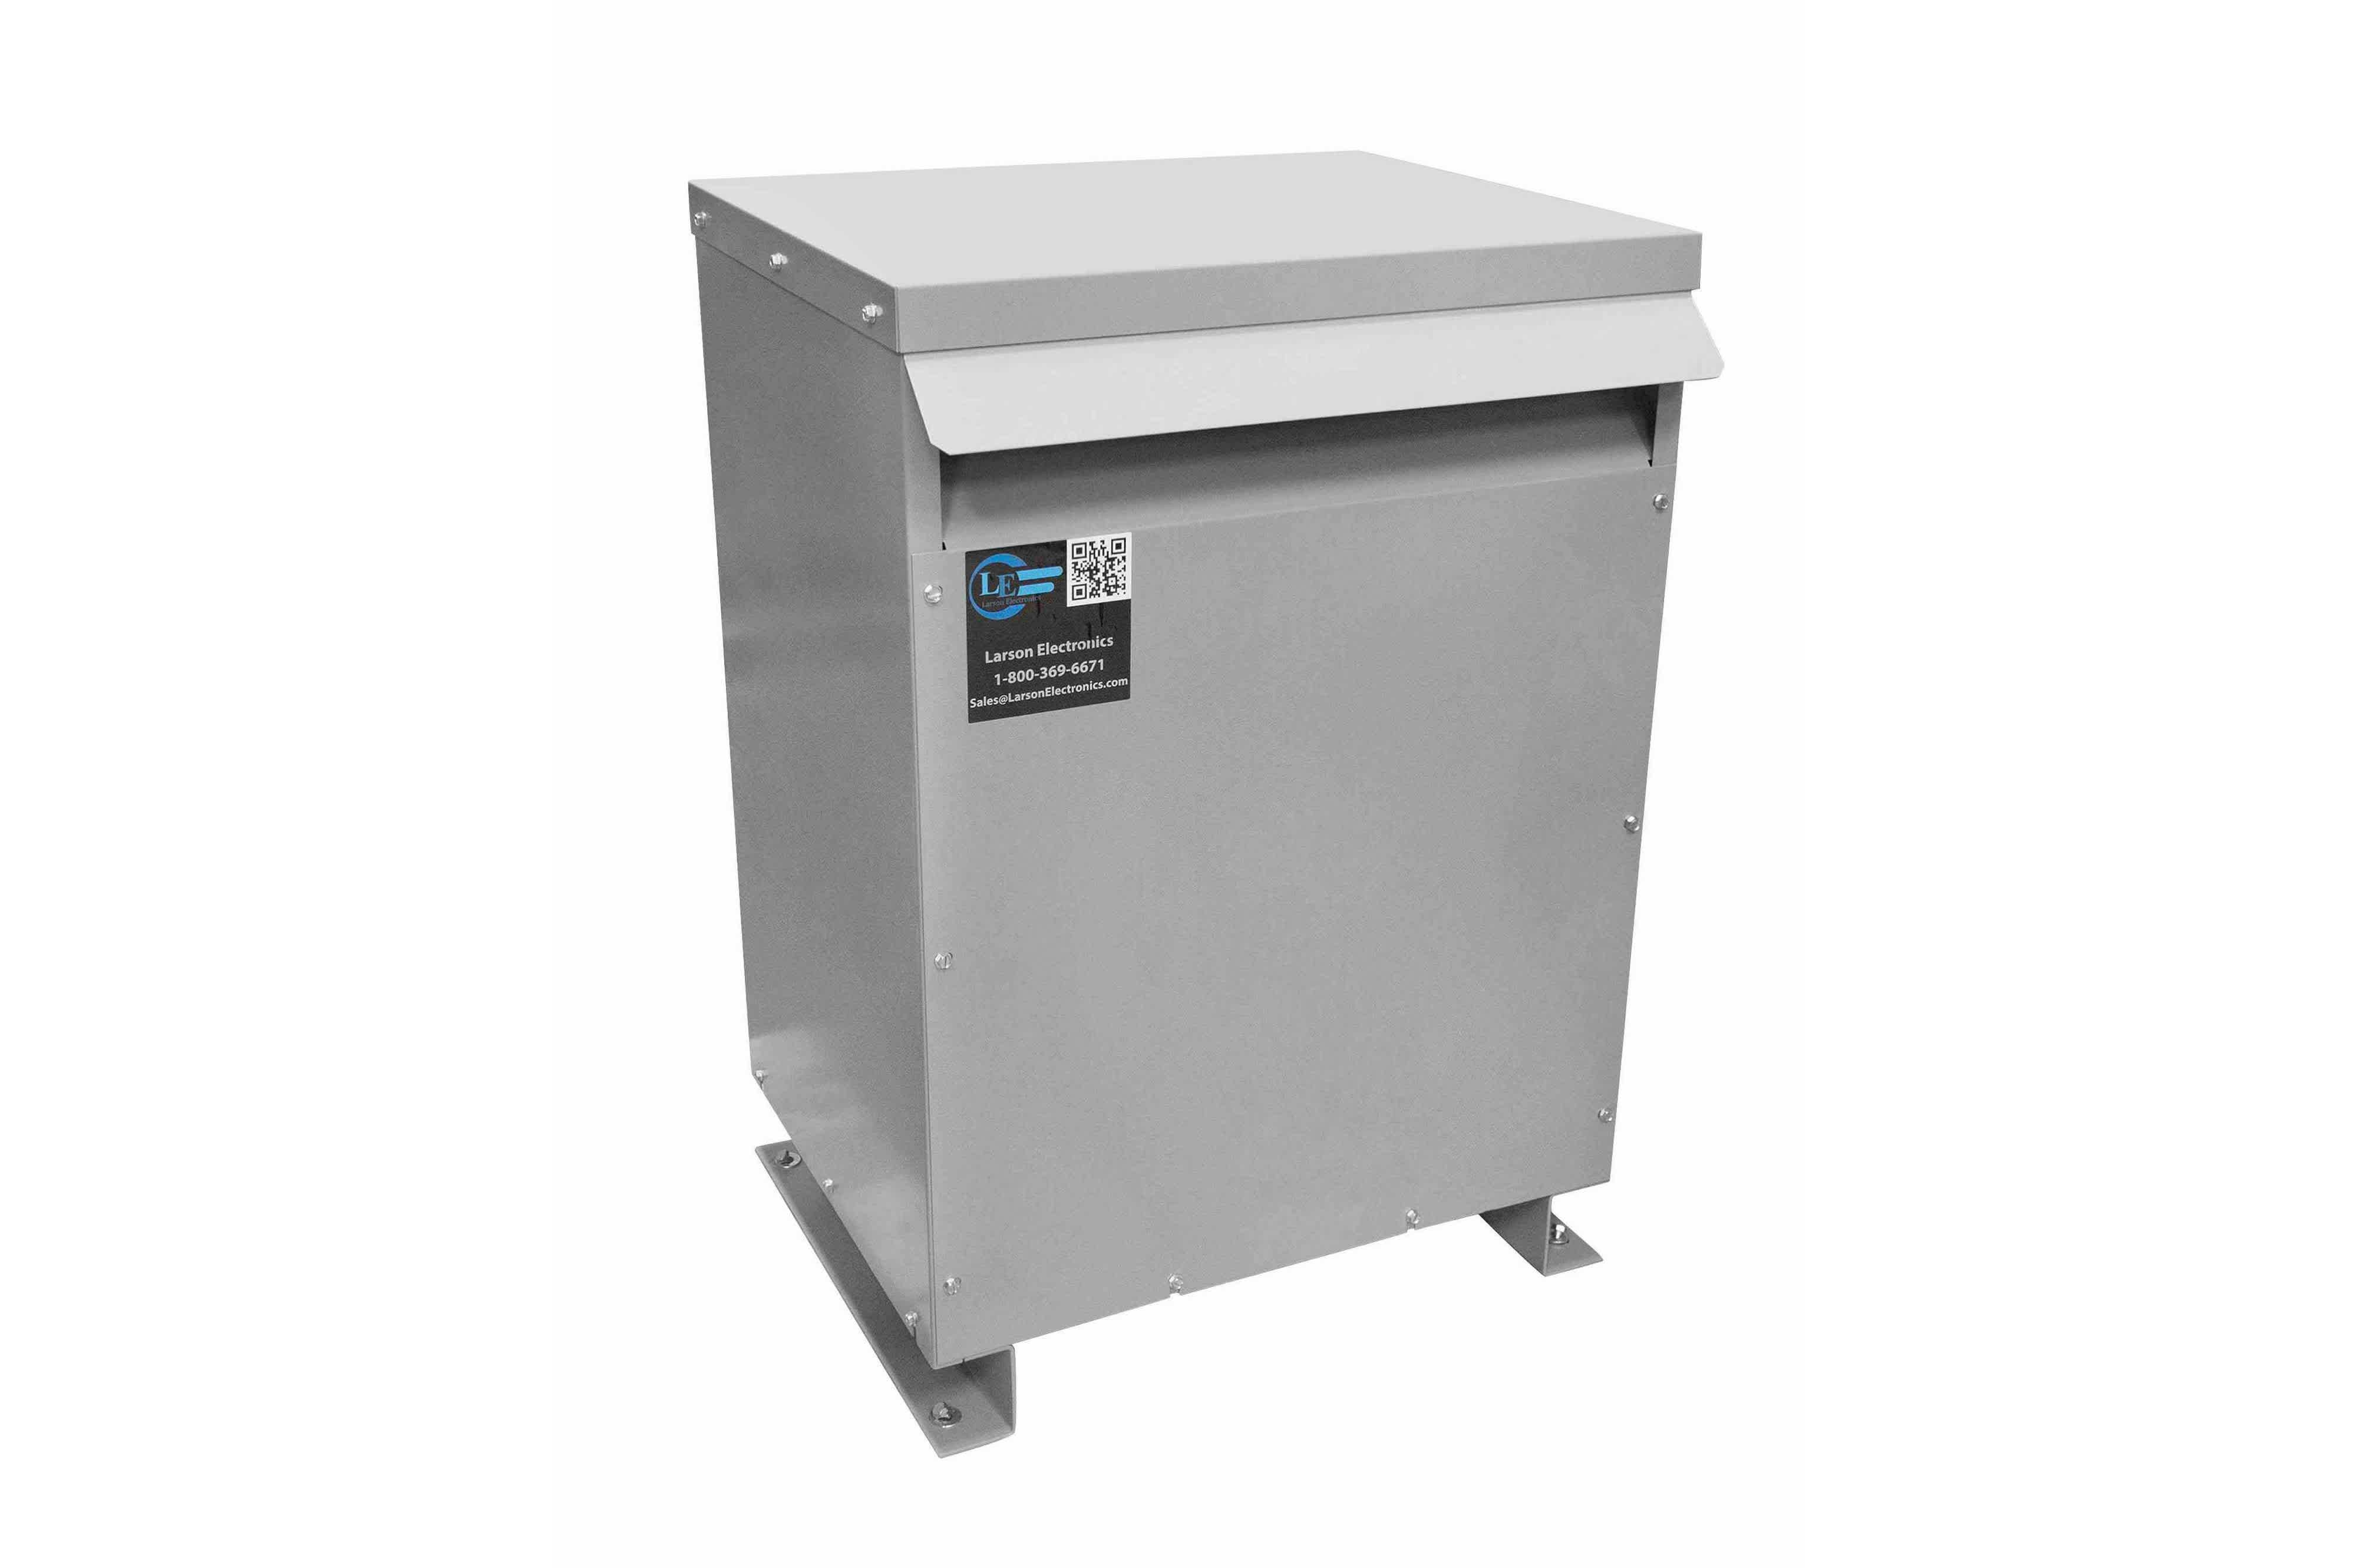 35 kVA 3PH Isolation Transformer, 240V Wye Primary, 400Y/231 Wye-N Secondary, N3R, Ventilated, 60 Hz